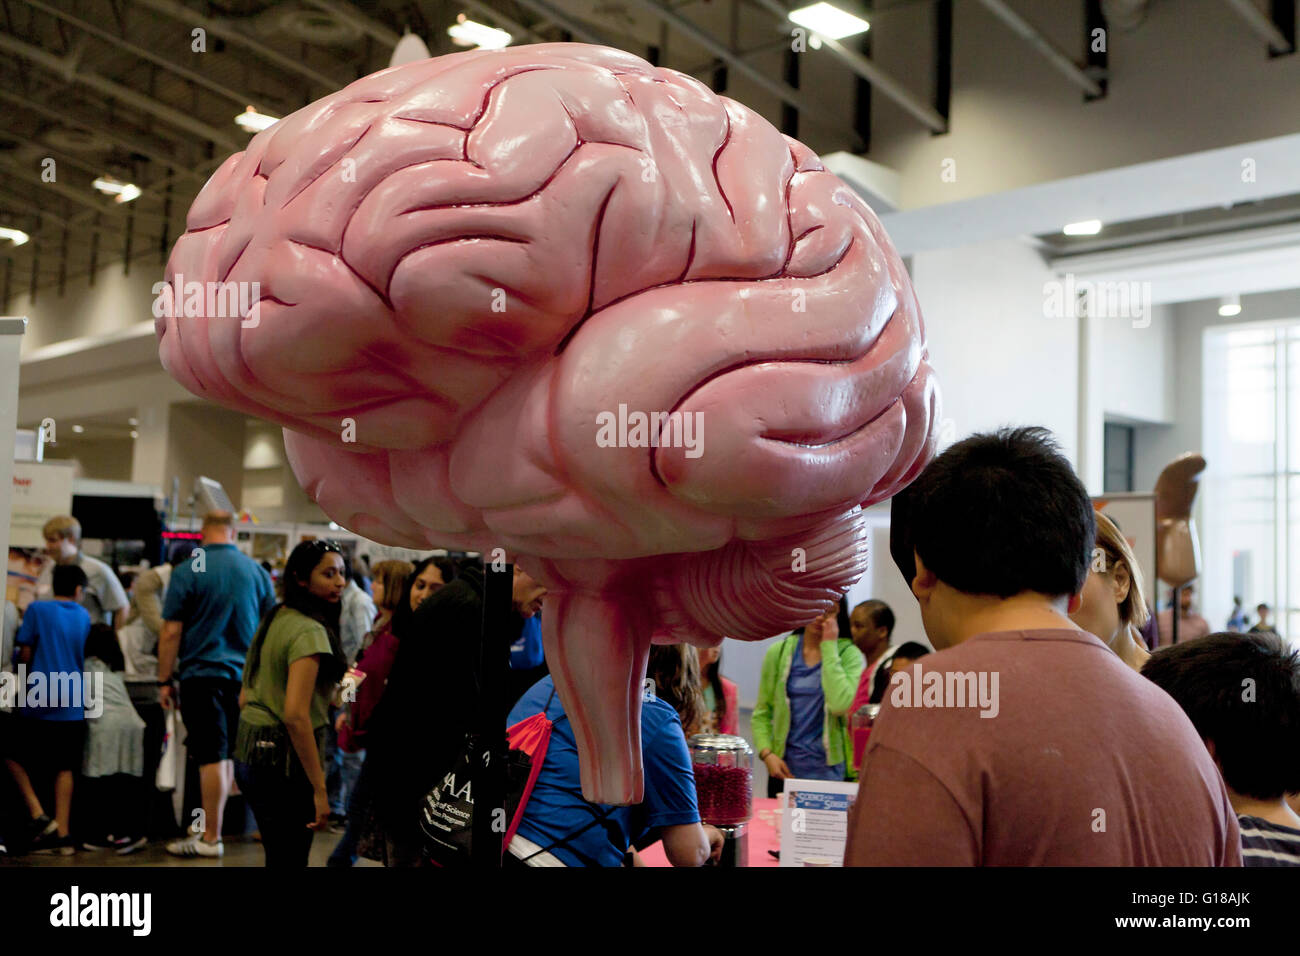 Interactive Brain Stock Photos & Interactive Brain Stock Images - Alamy